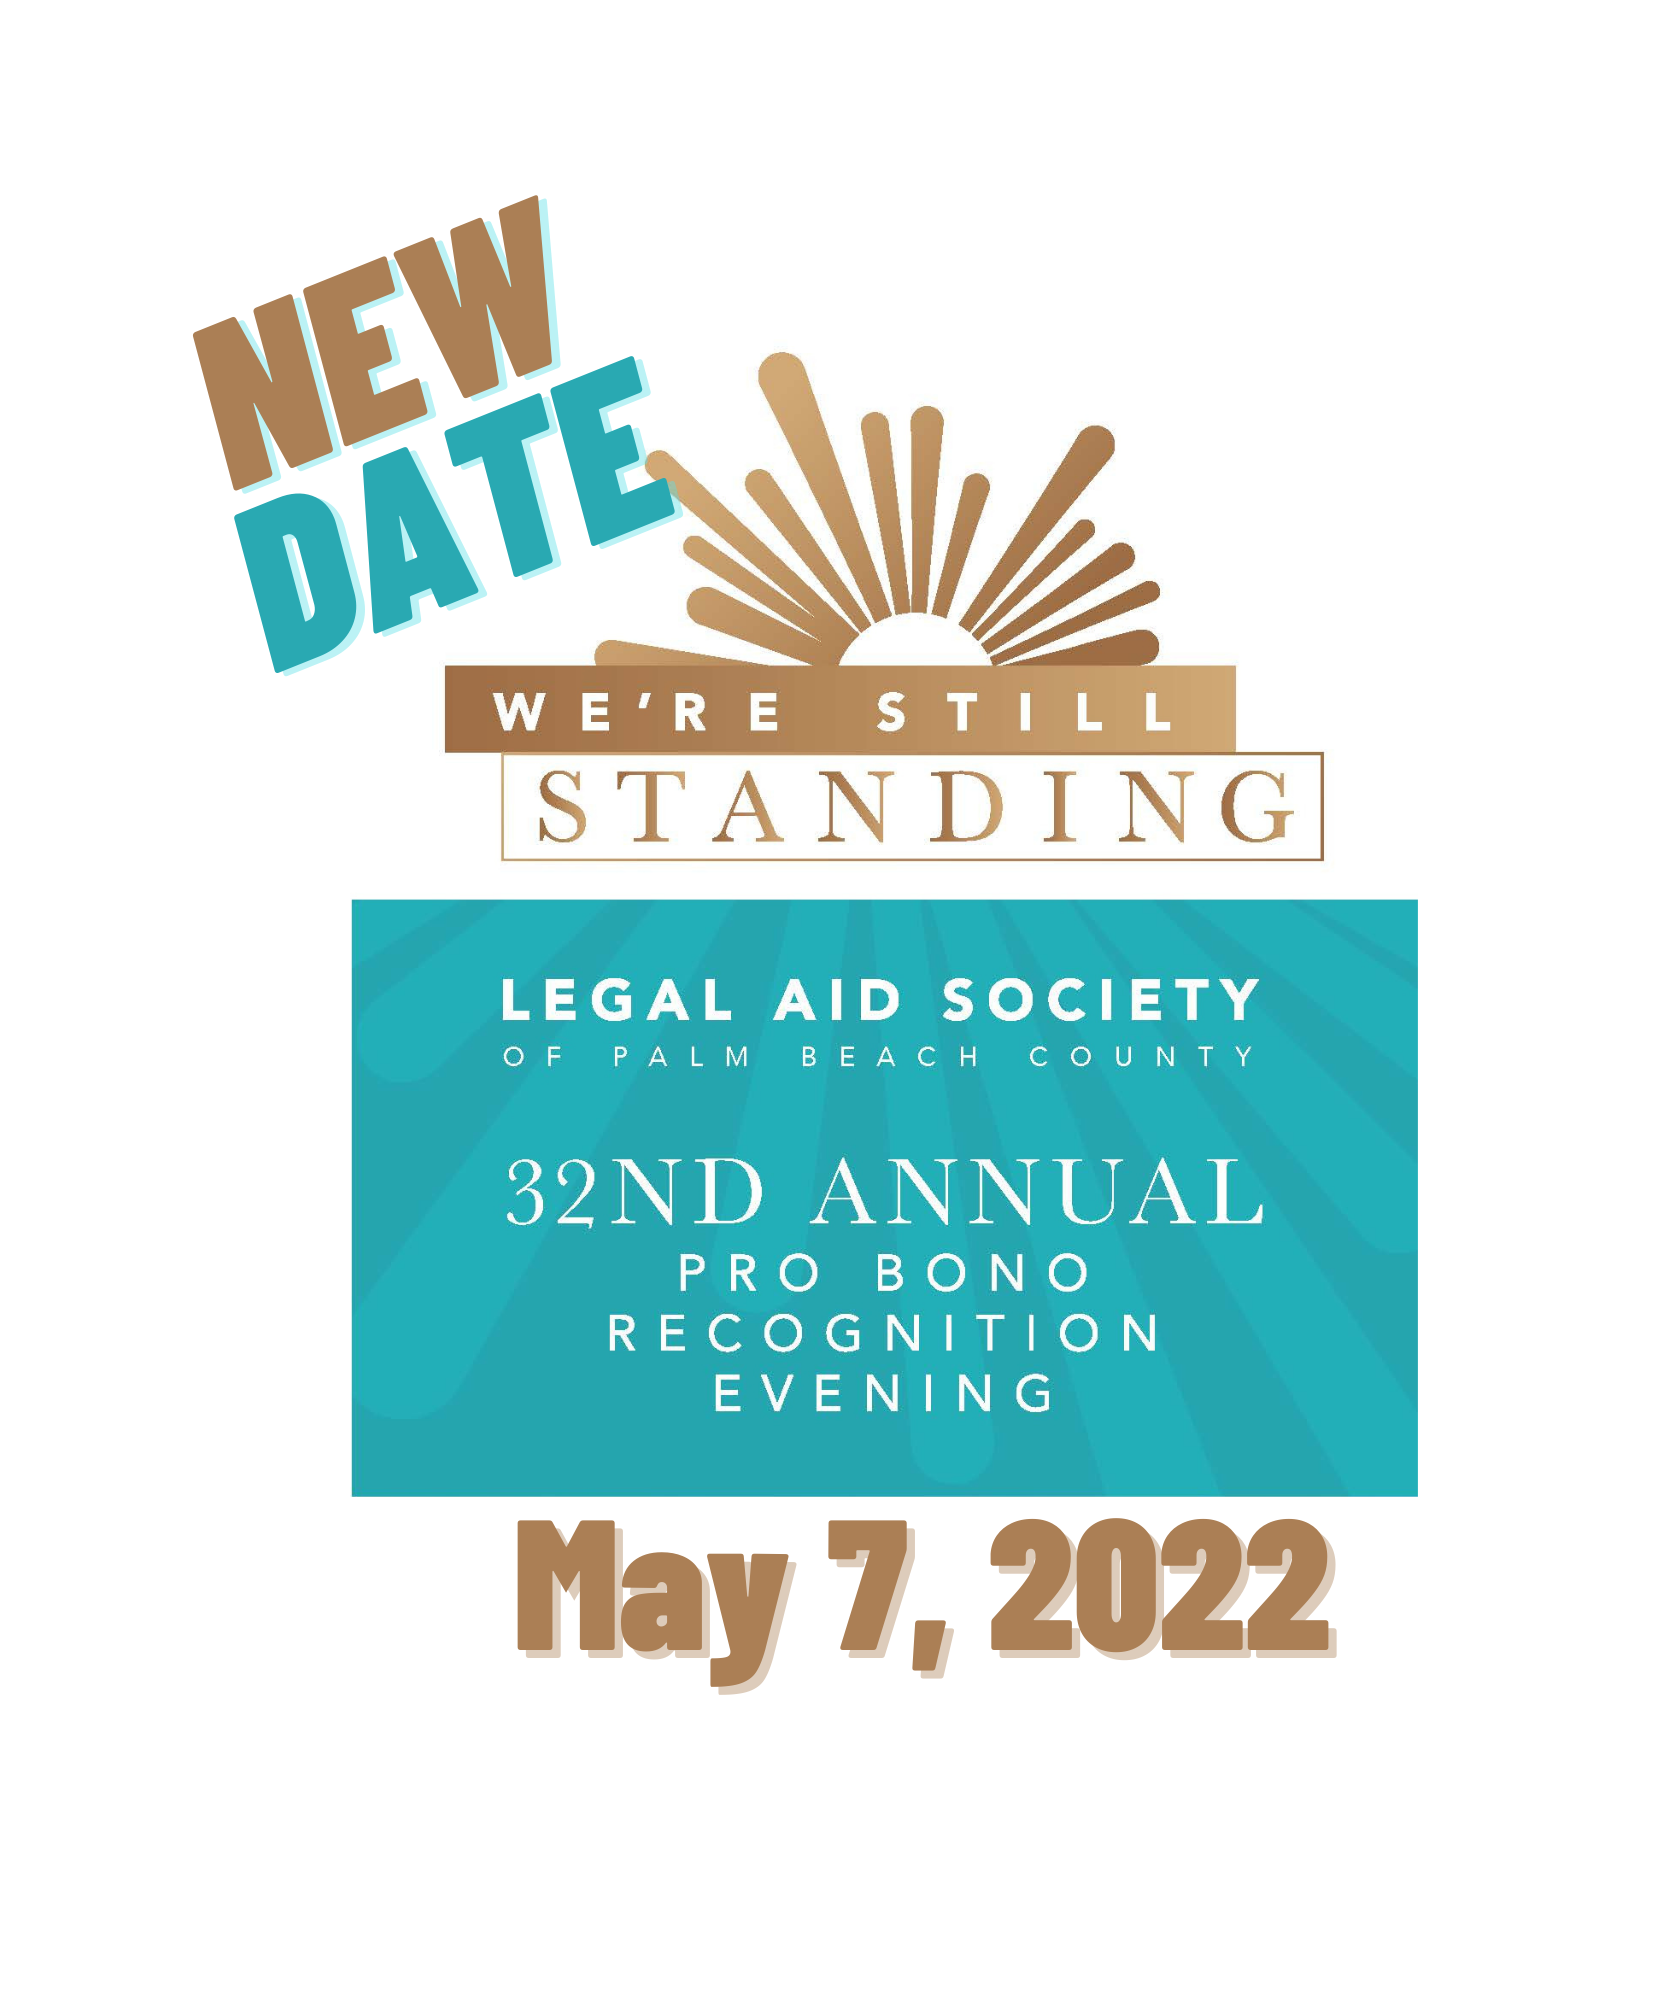 NEW DATE for 32nd Annual Pro Bono Recognition Evening – May 7, 2022